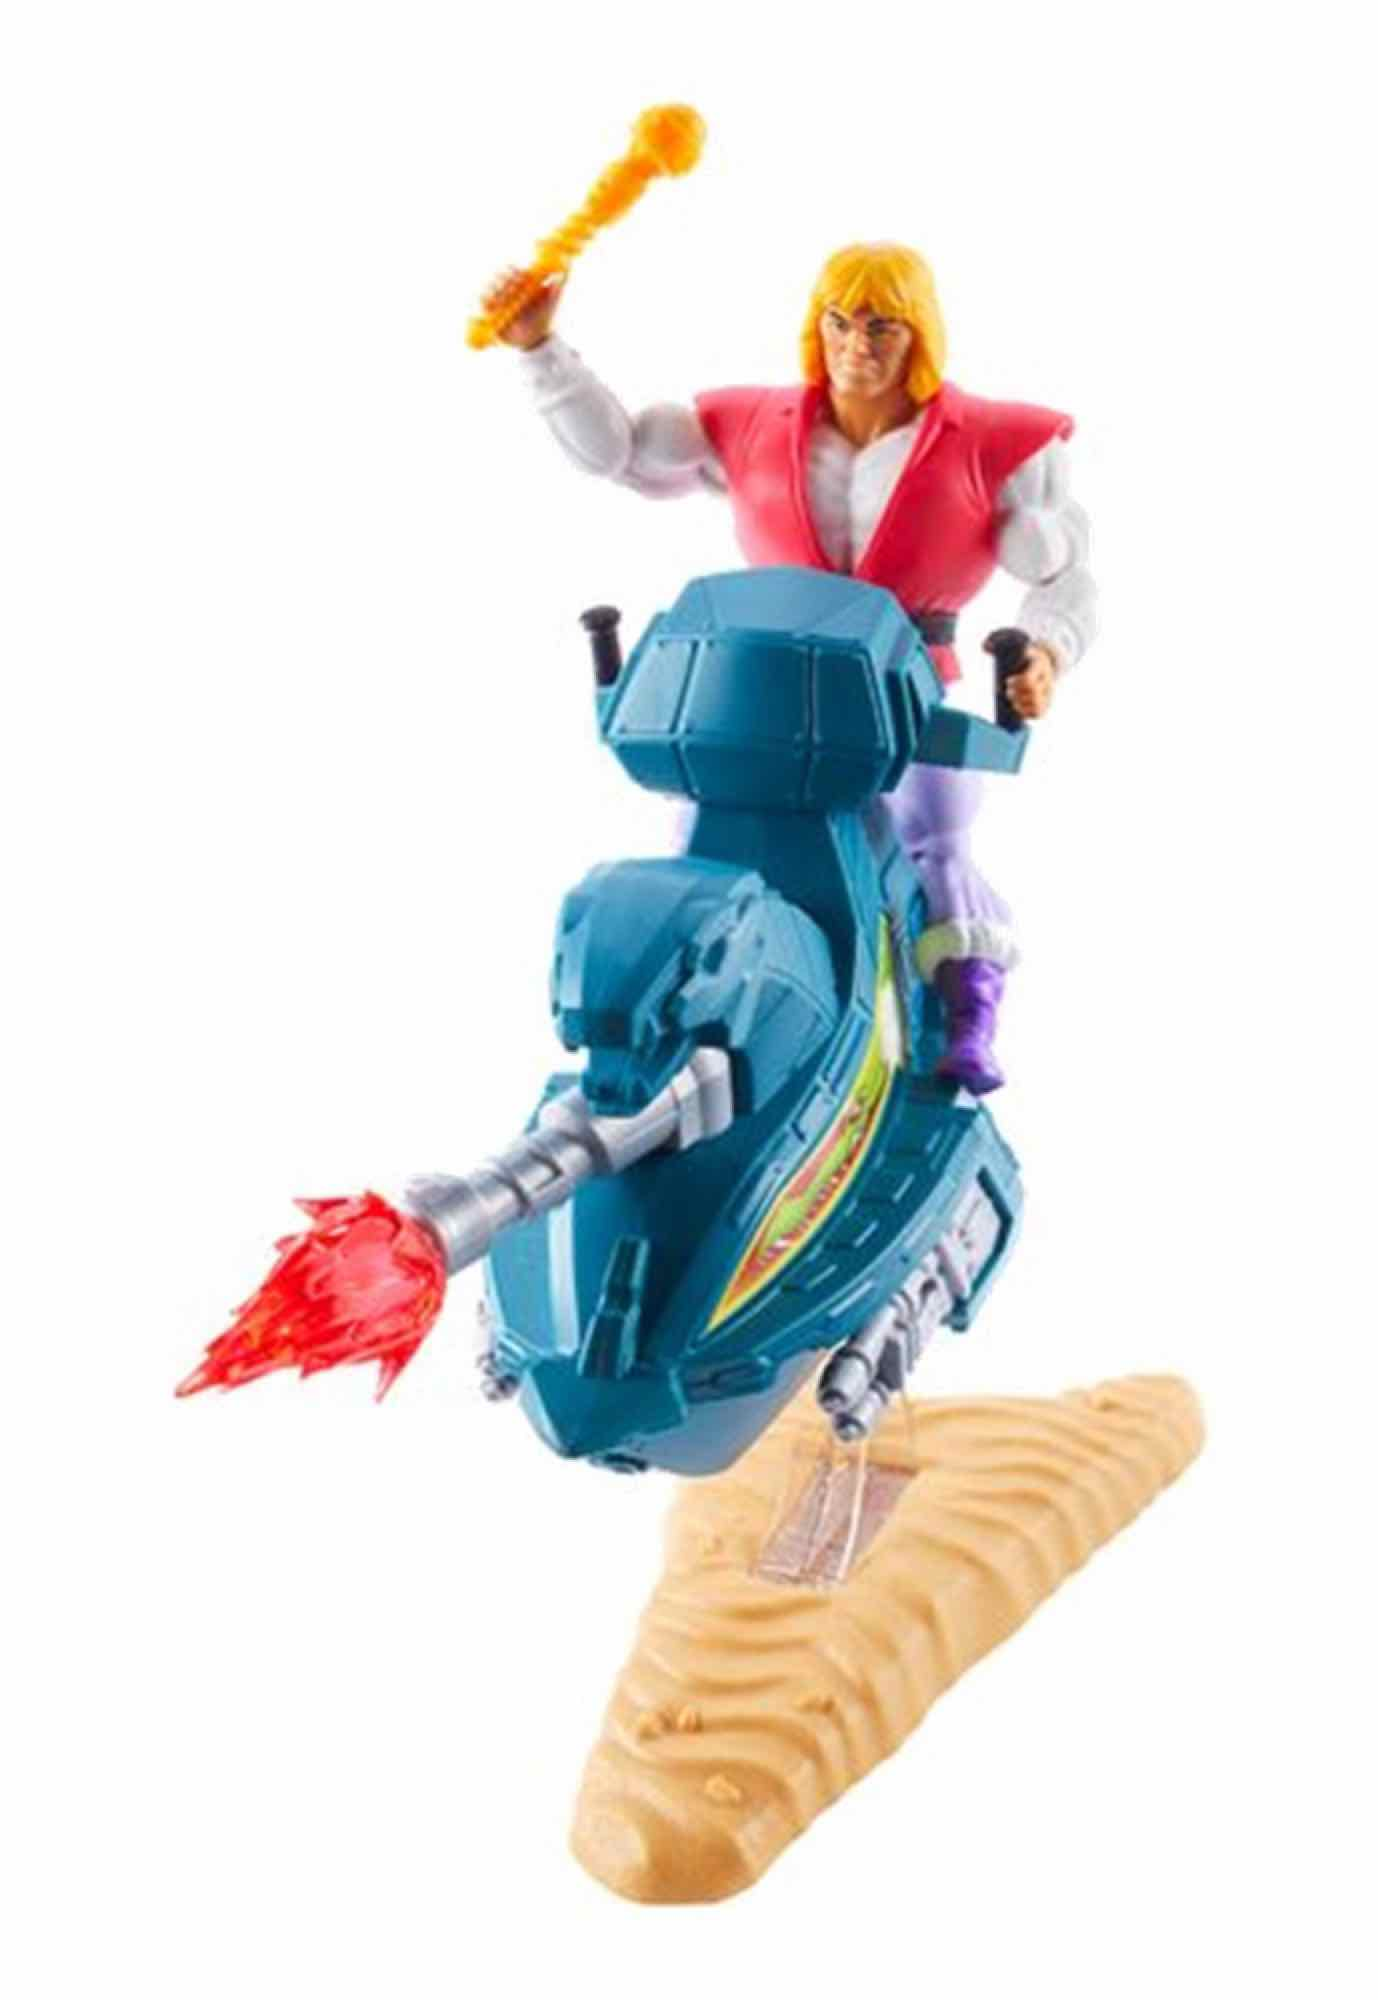 MASTERS OF THE UNIVERSE ORIGINS PRINCE ADAM + SKY SLED